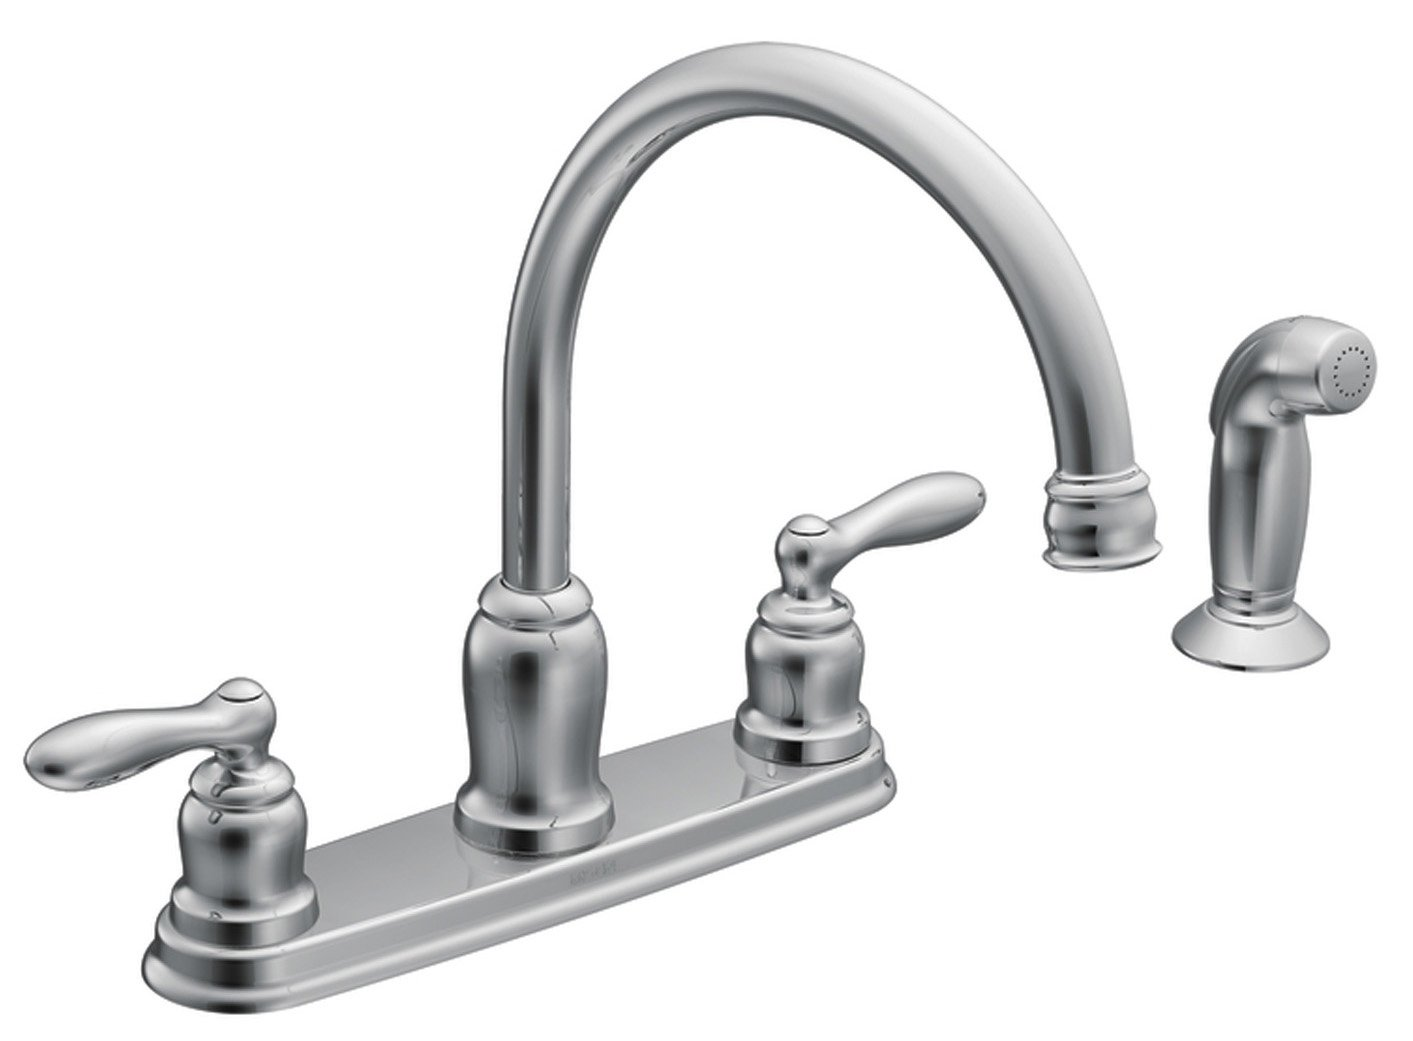 Gentil Moen CA87888 High Arc Kitchen Faucet From The Caldwell Collection, Chrome    Touch On Kitchen Sink Faucets   Amazon.com